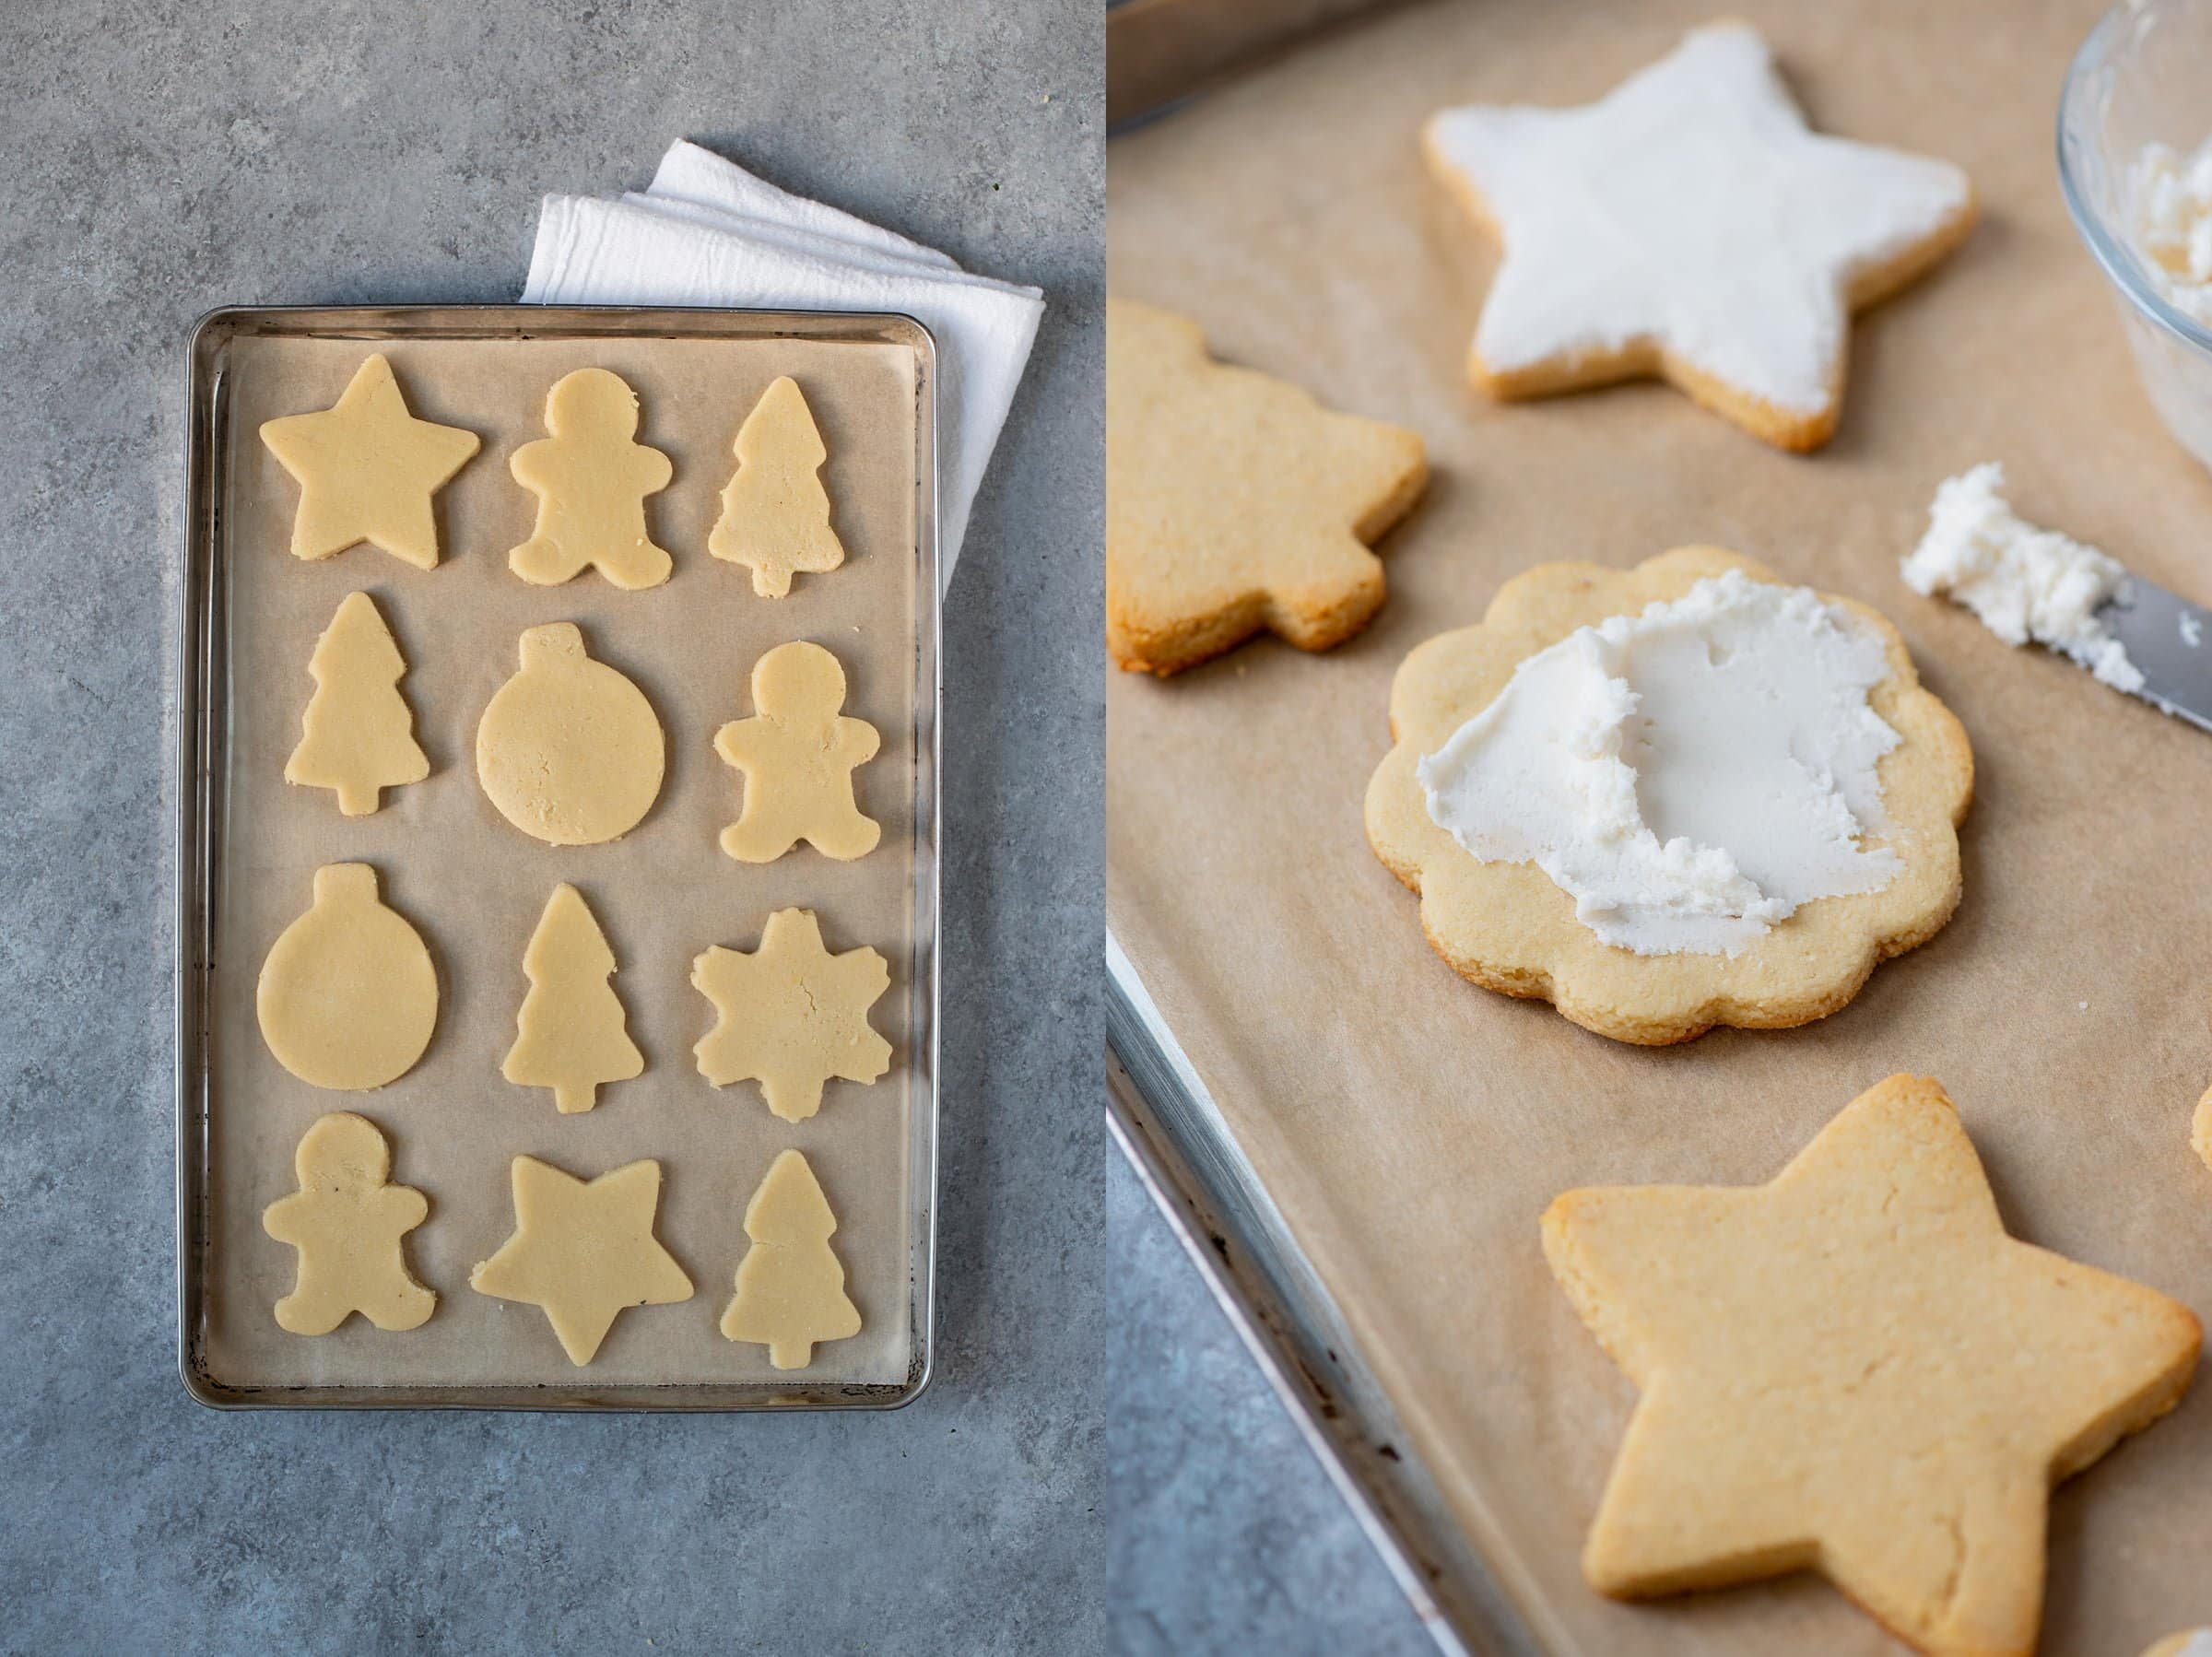 Split shot. On the left, cut-out cookie dough shapes on a baking sheet. On the right, baked cookies being frosted.